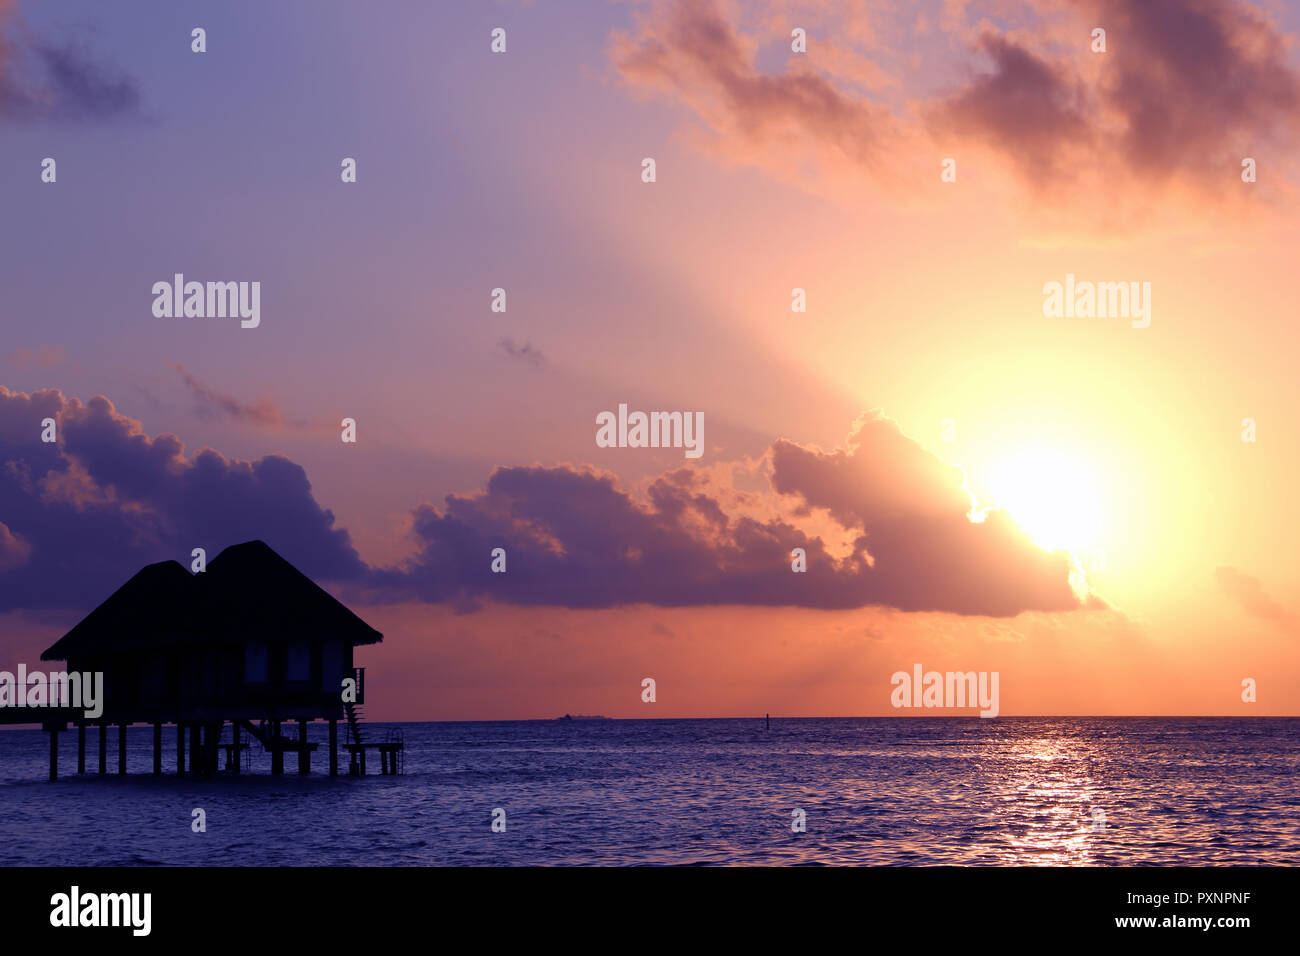 Over-water bungalow at sunset - Stock Image